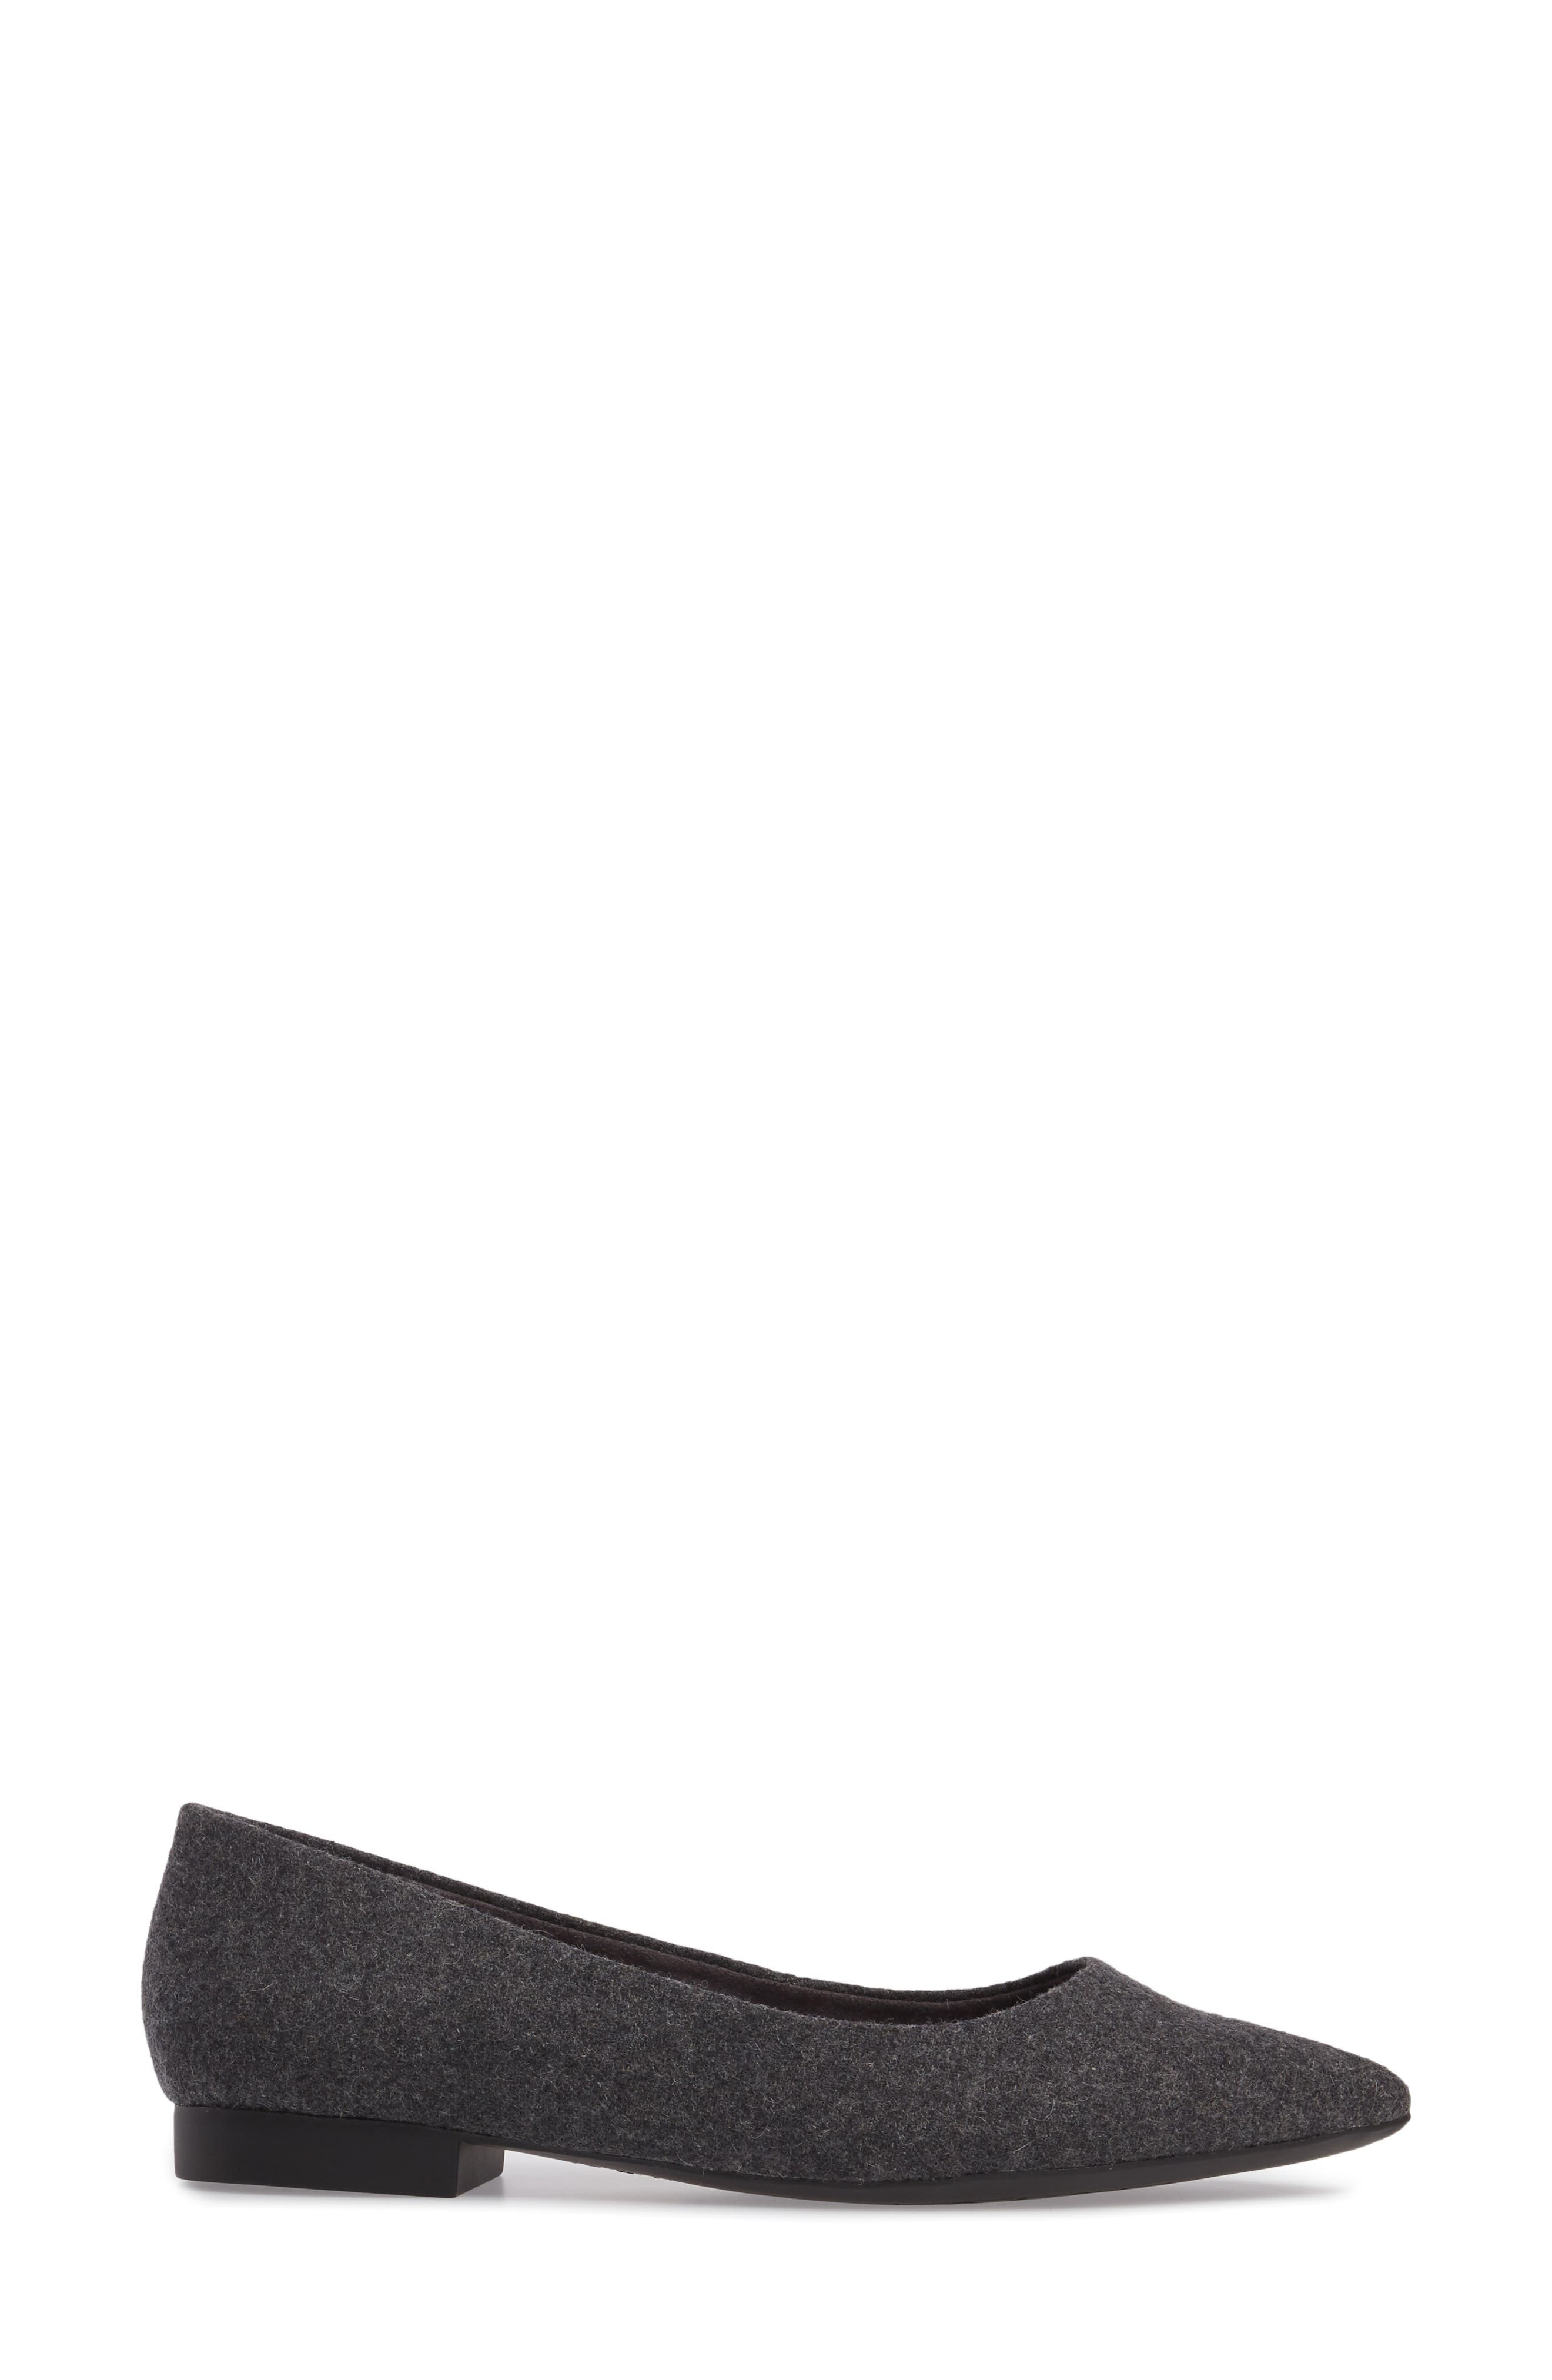 'Vivien' Pointy Toe Flat,                             Alternate thumbnail 3, color,                             GREY FLANNEL FABRIC